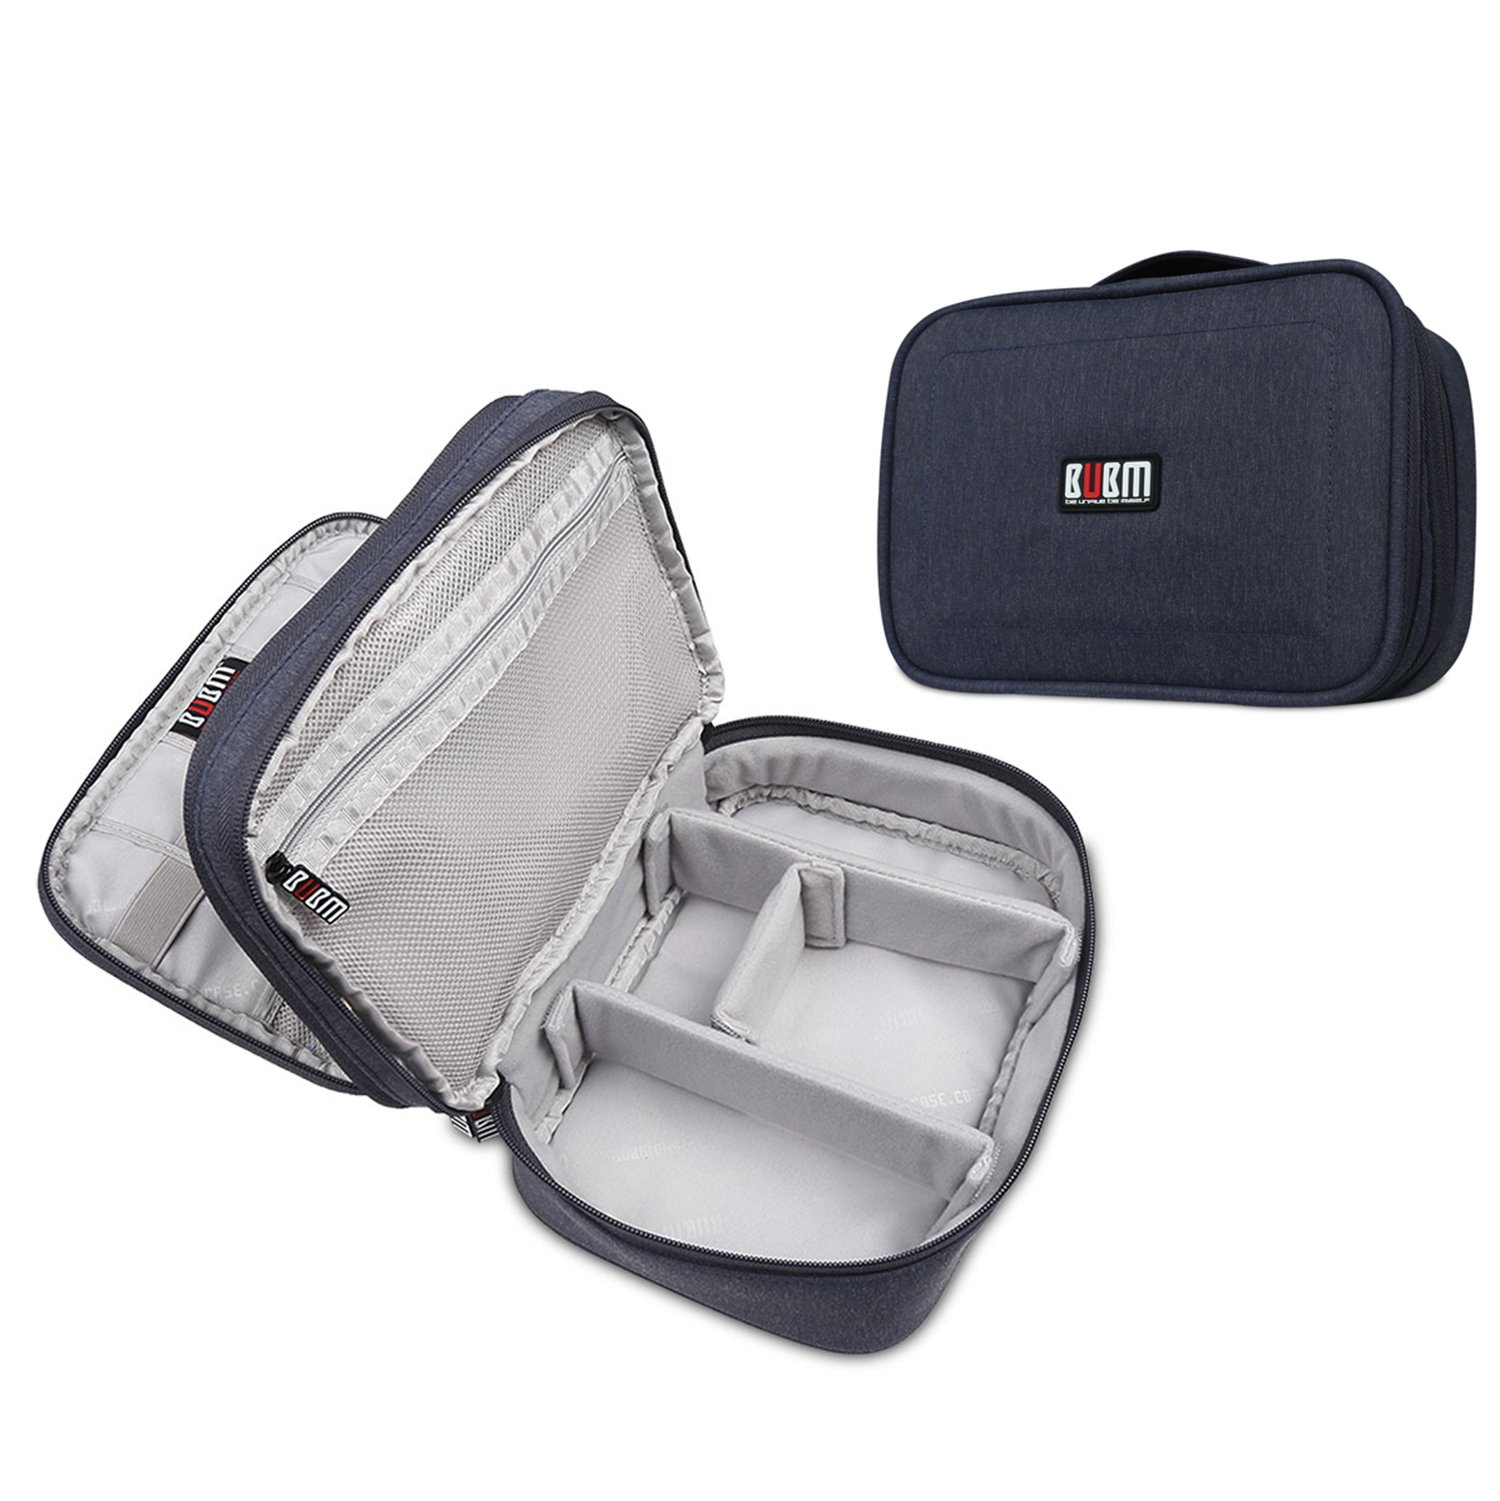 Travel Organizer Carrying Bag - BUBM Portable Electronics Organizer Storage Bag for USB Cables, Chargers, Power Bank,iPad Mini,2-Layer Design, Waterproof, 2 Year Warranty